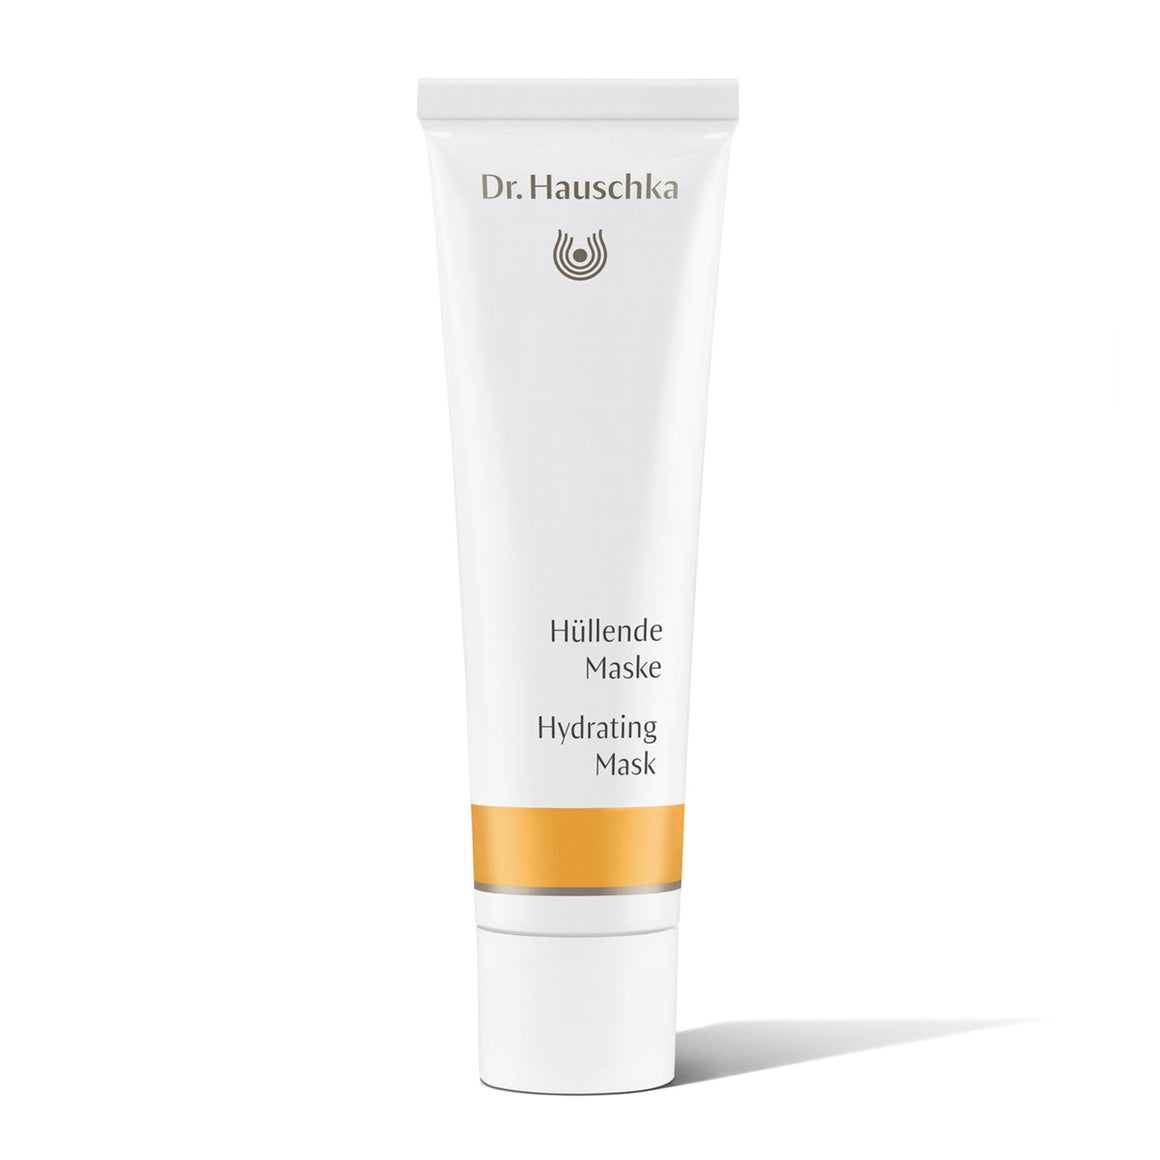 Hydrating Mask - Aldha